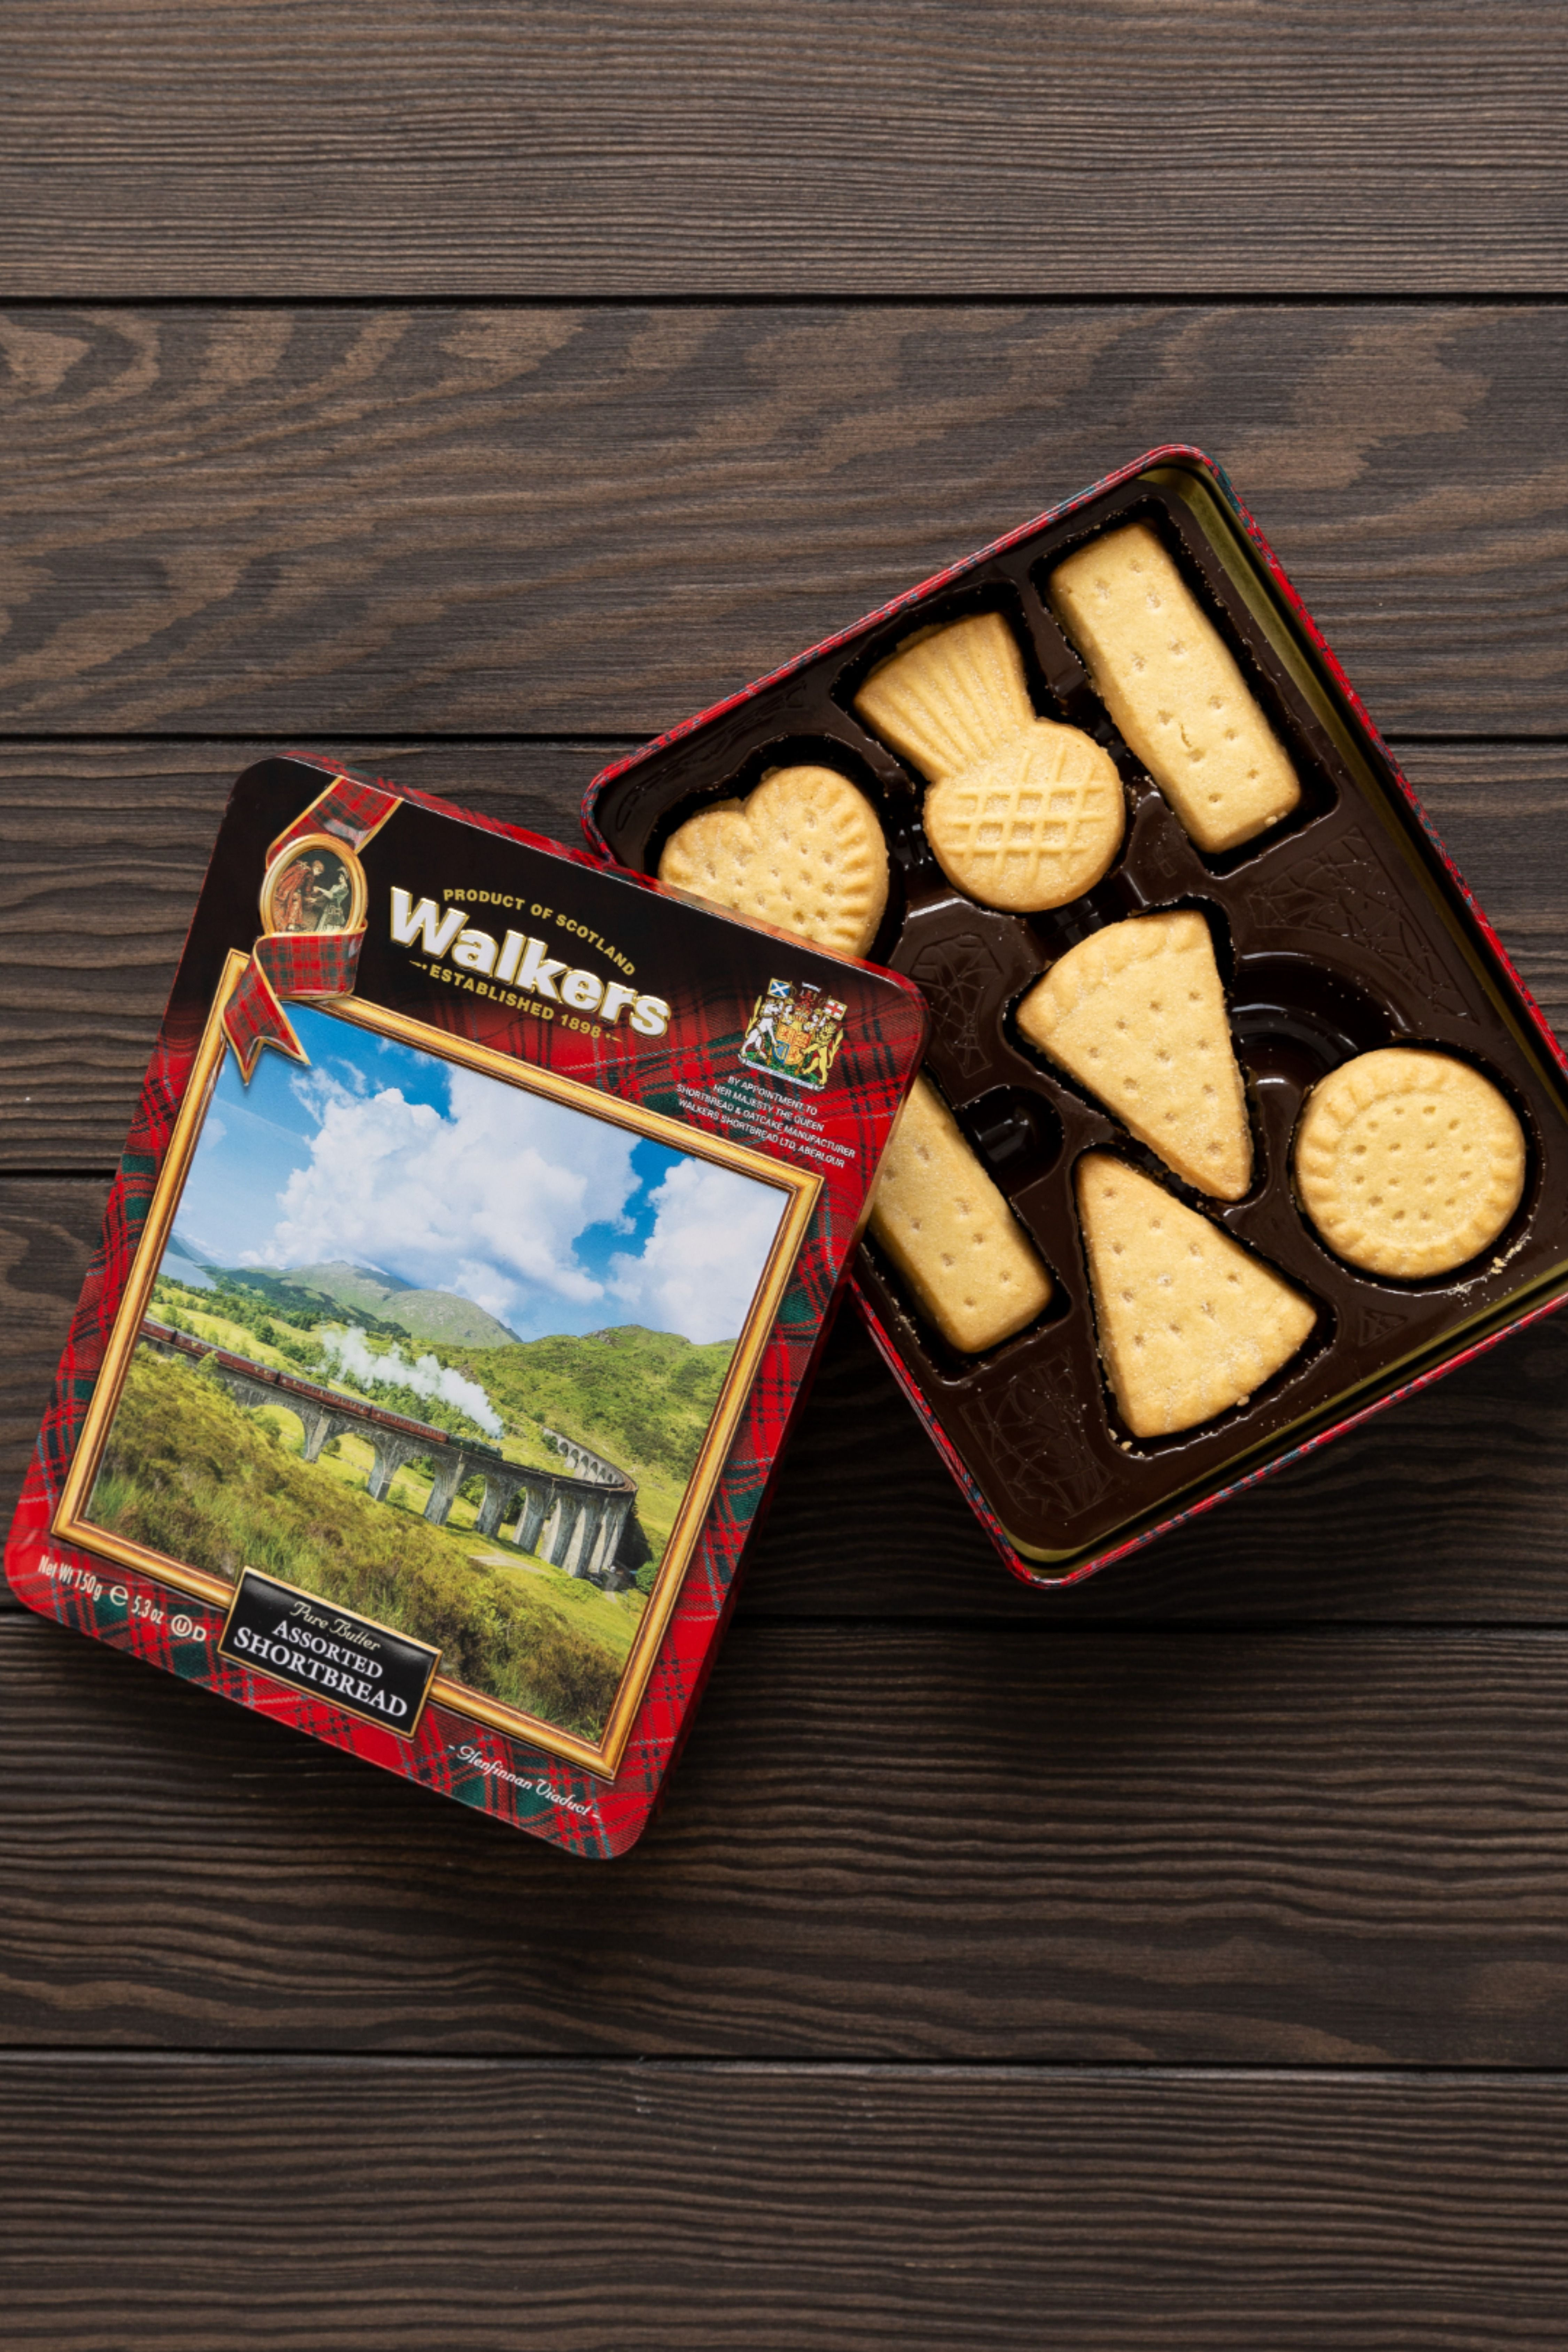 Glenfinnan viaduct shortbread tin in 2020 with images